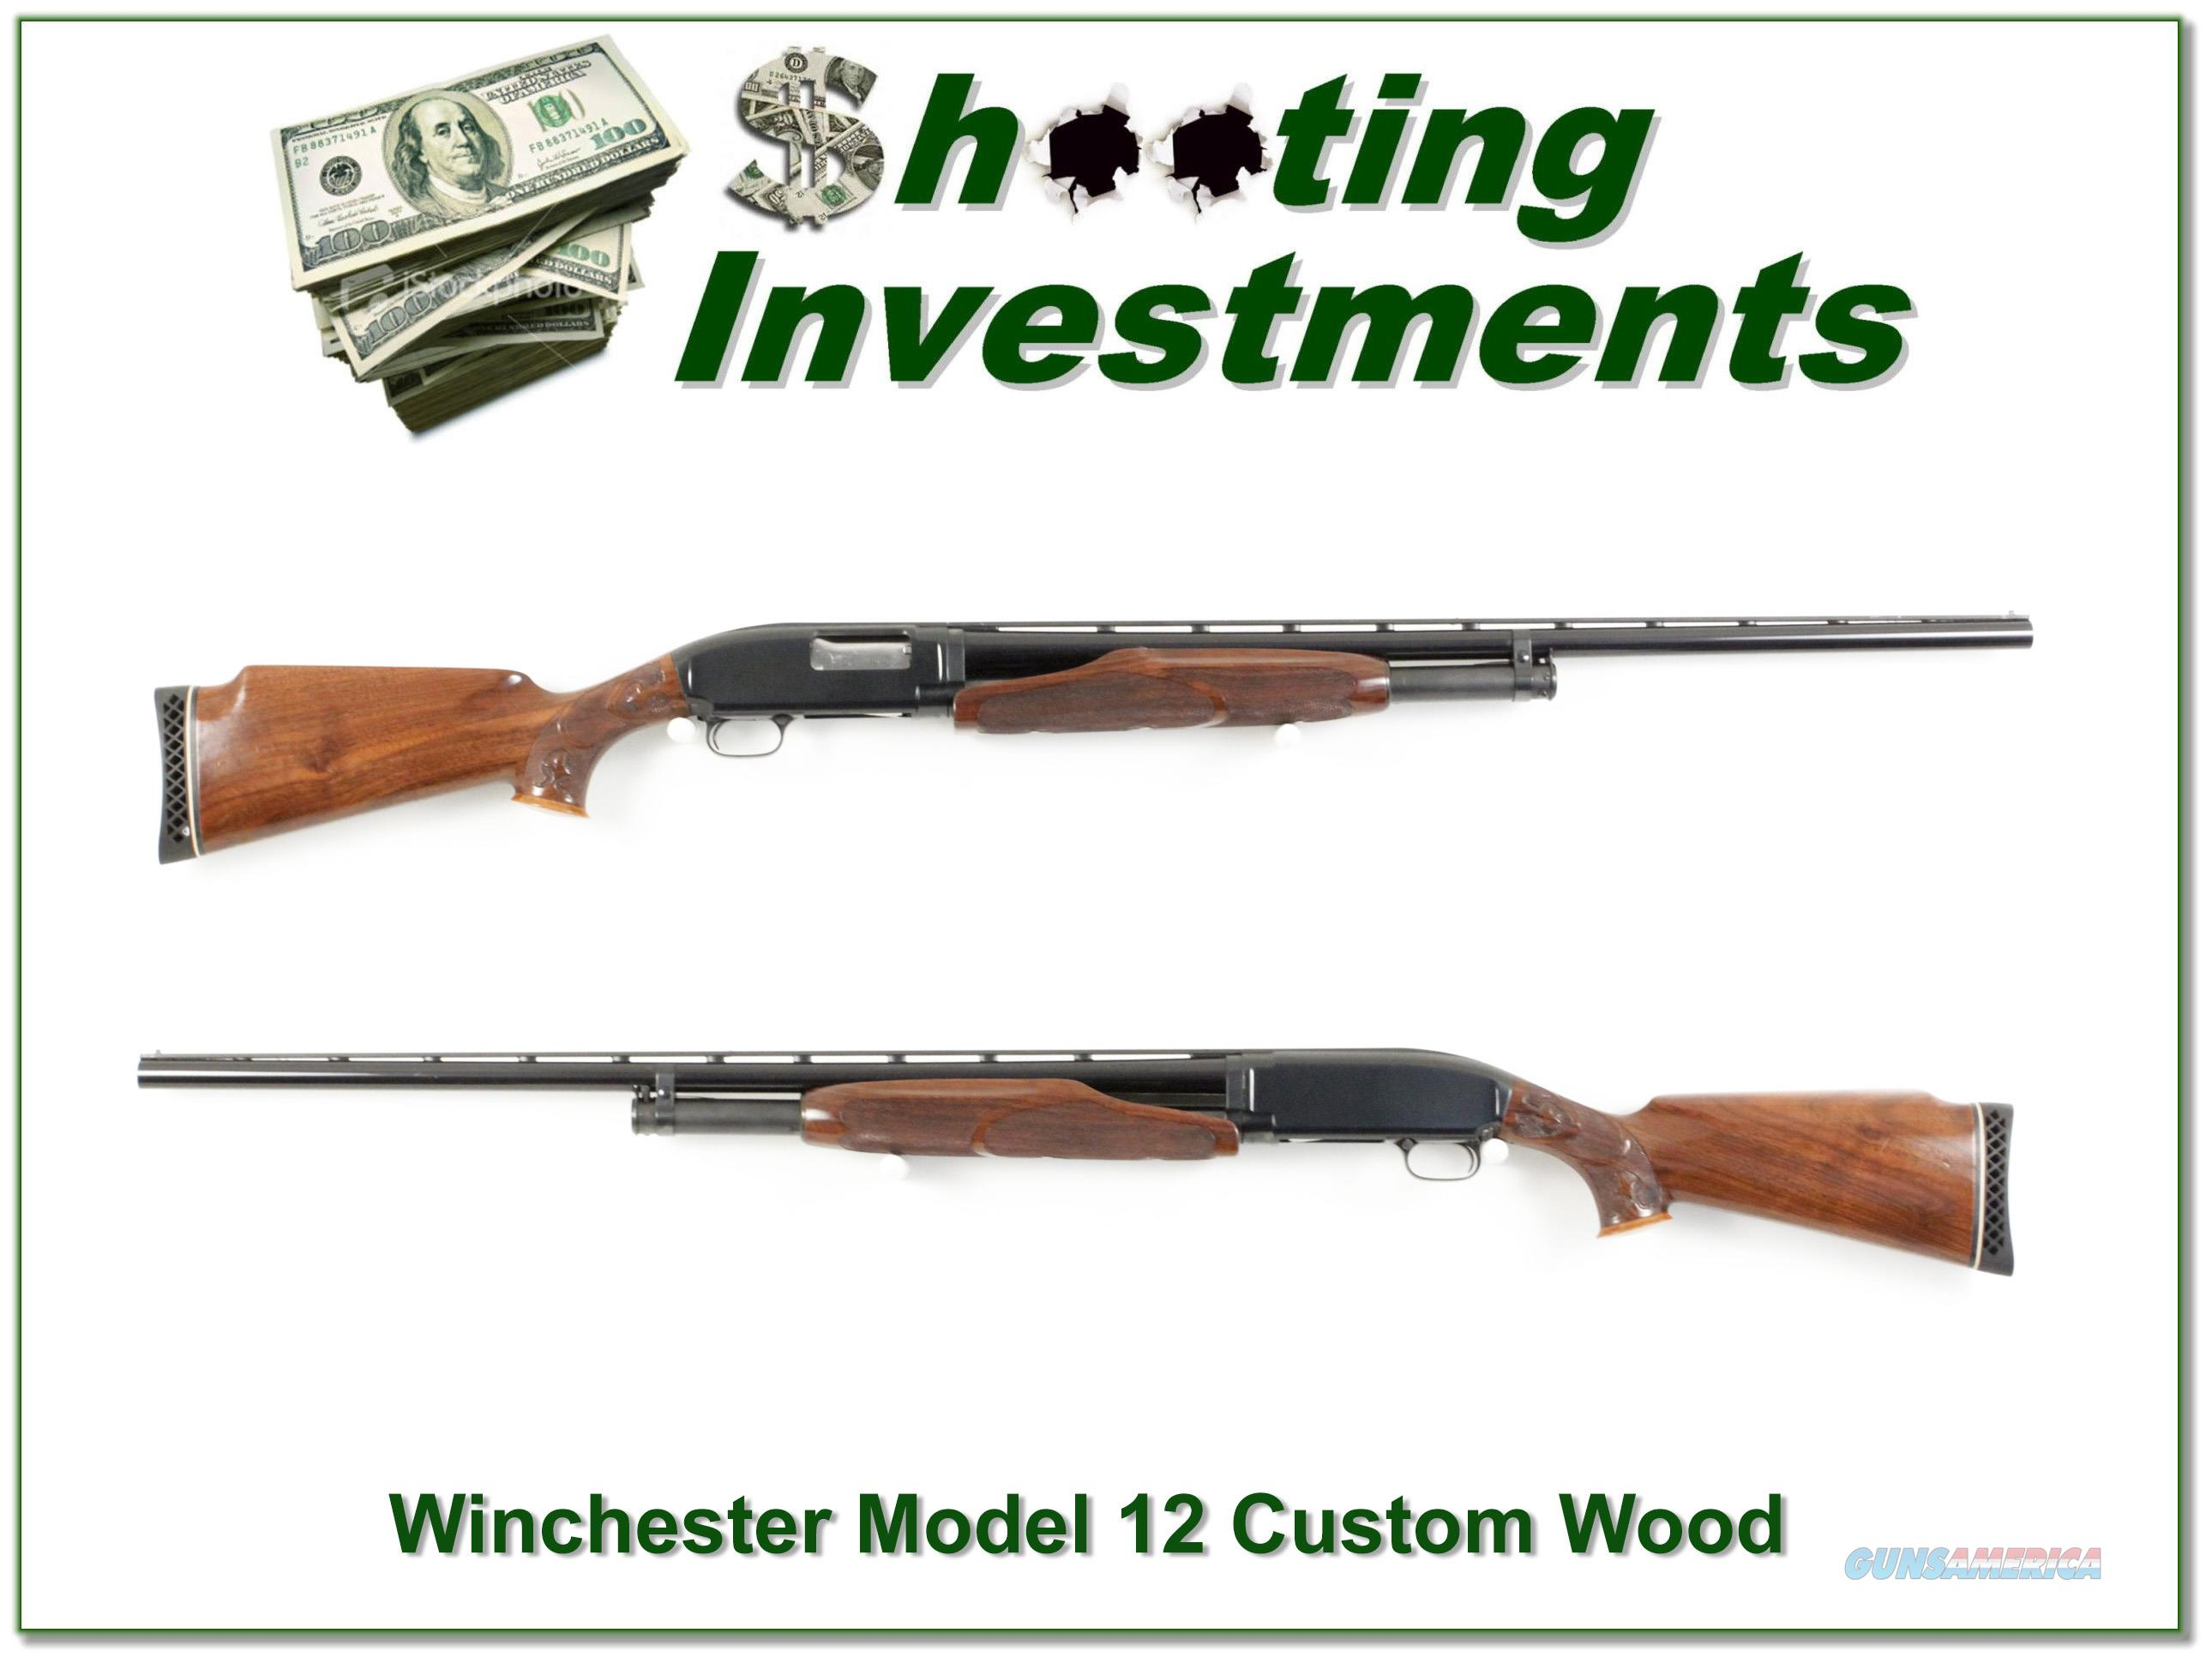 Winchester Model 12 Trap 12 Ga Custom Wood Vent Rib made in 1948  Guns > Shotguns > Winchester Shotguns - Modern > Pump Action > Trap/Skeet